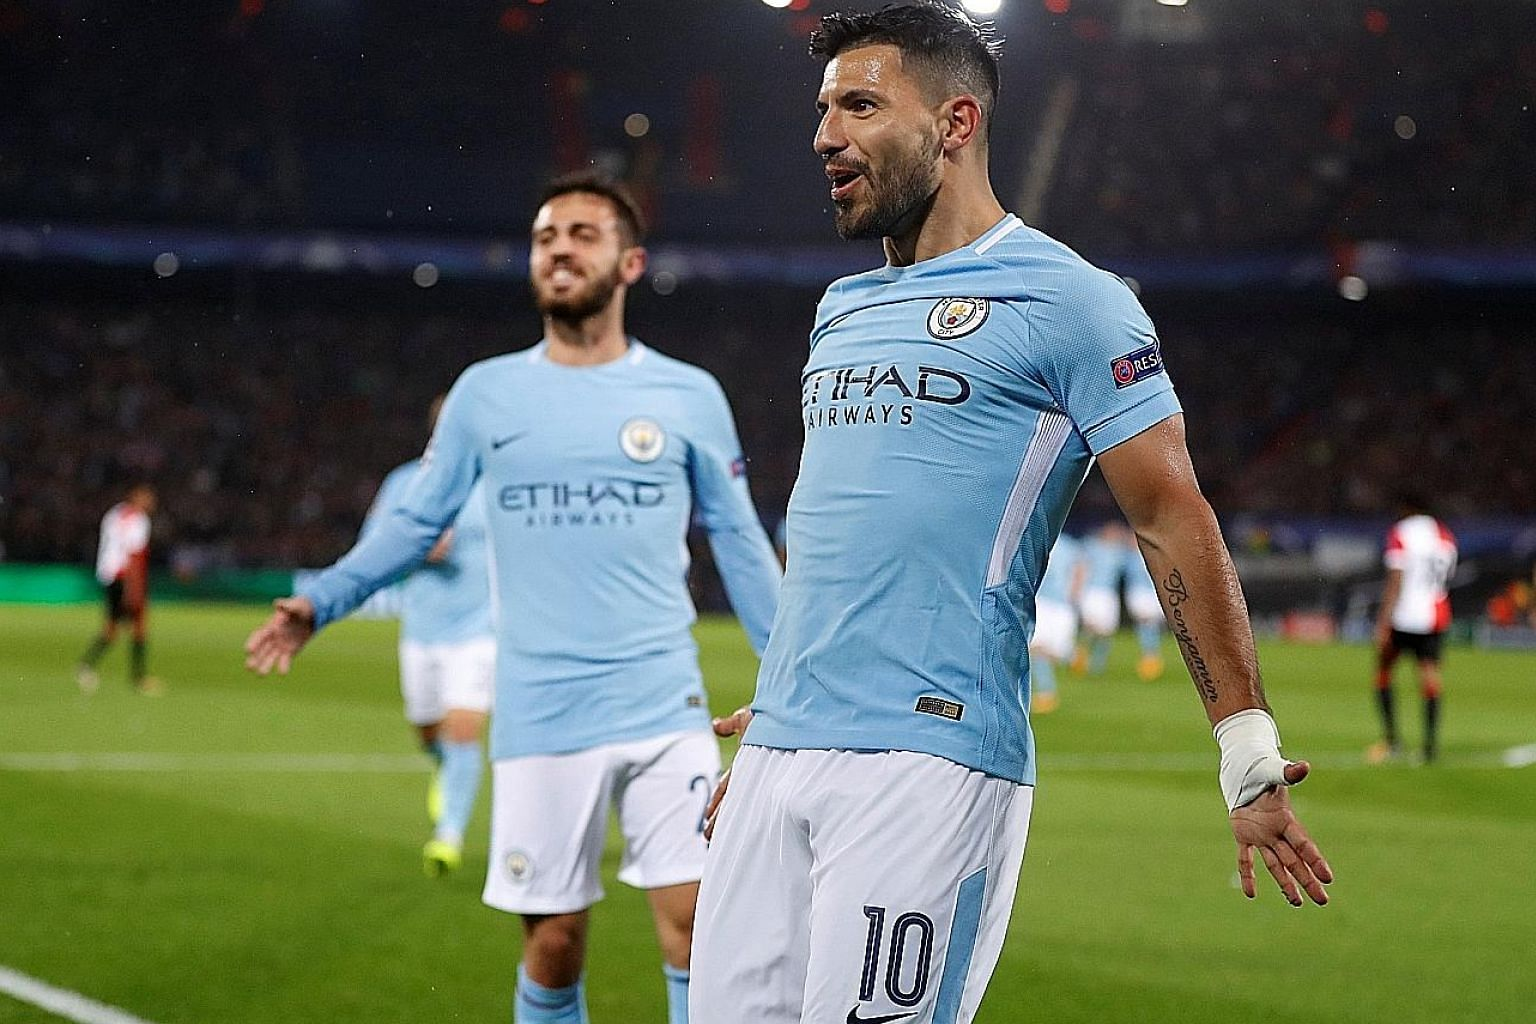 Sergio Aguero celebrating after scoring Manchester City's second goal in the 4-0 victory against Feyenoord in their Champions League Group F game in Rotterdam on Wednesday.